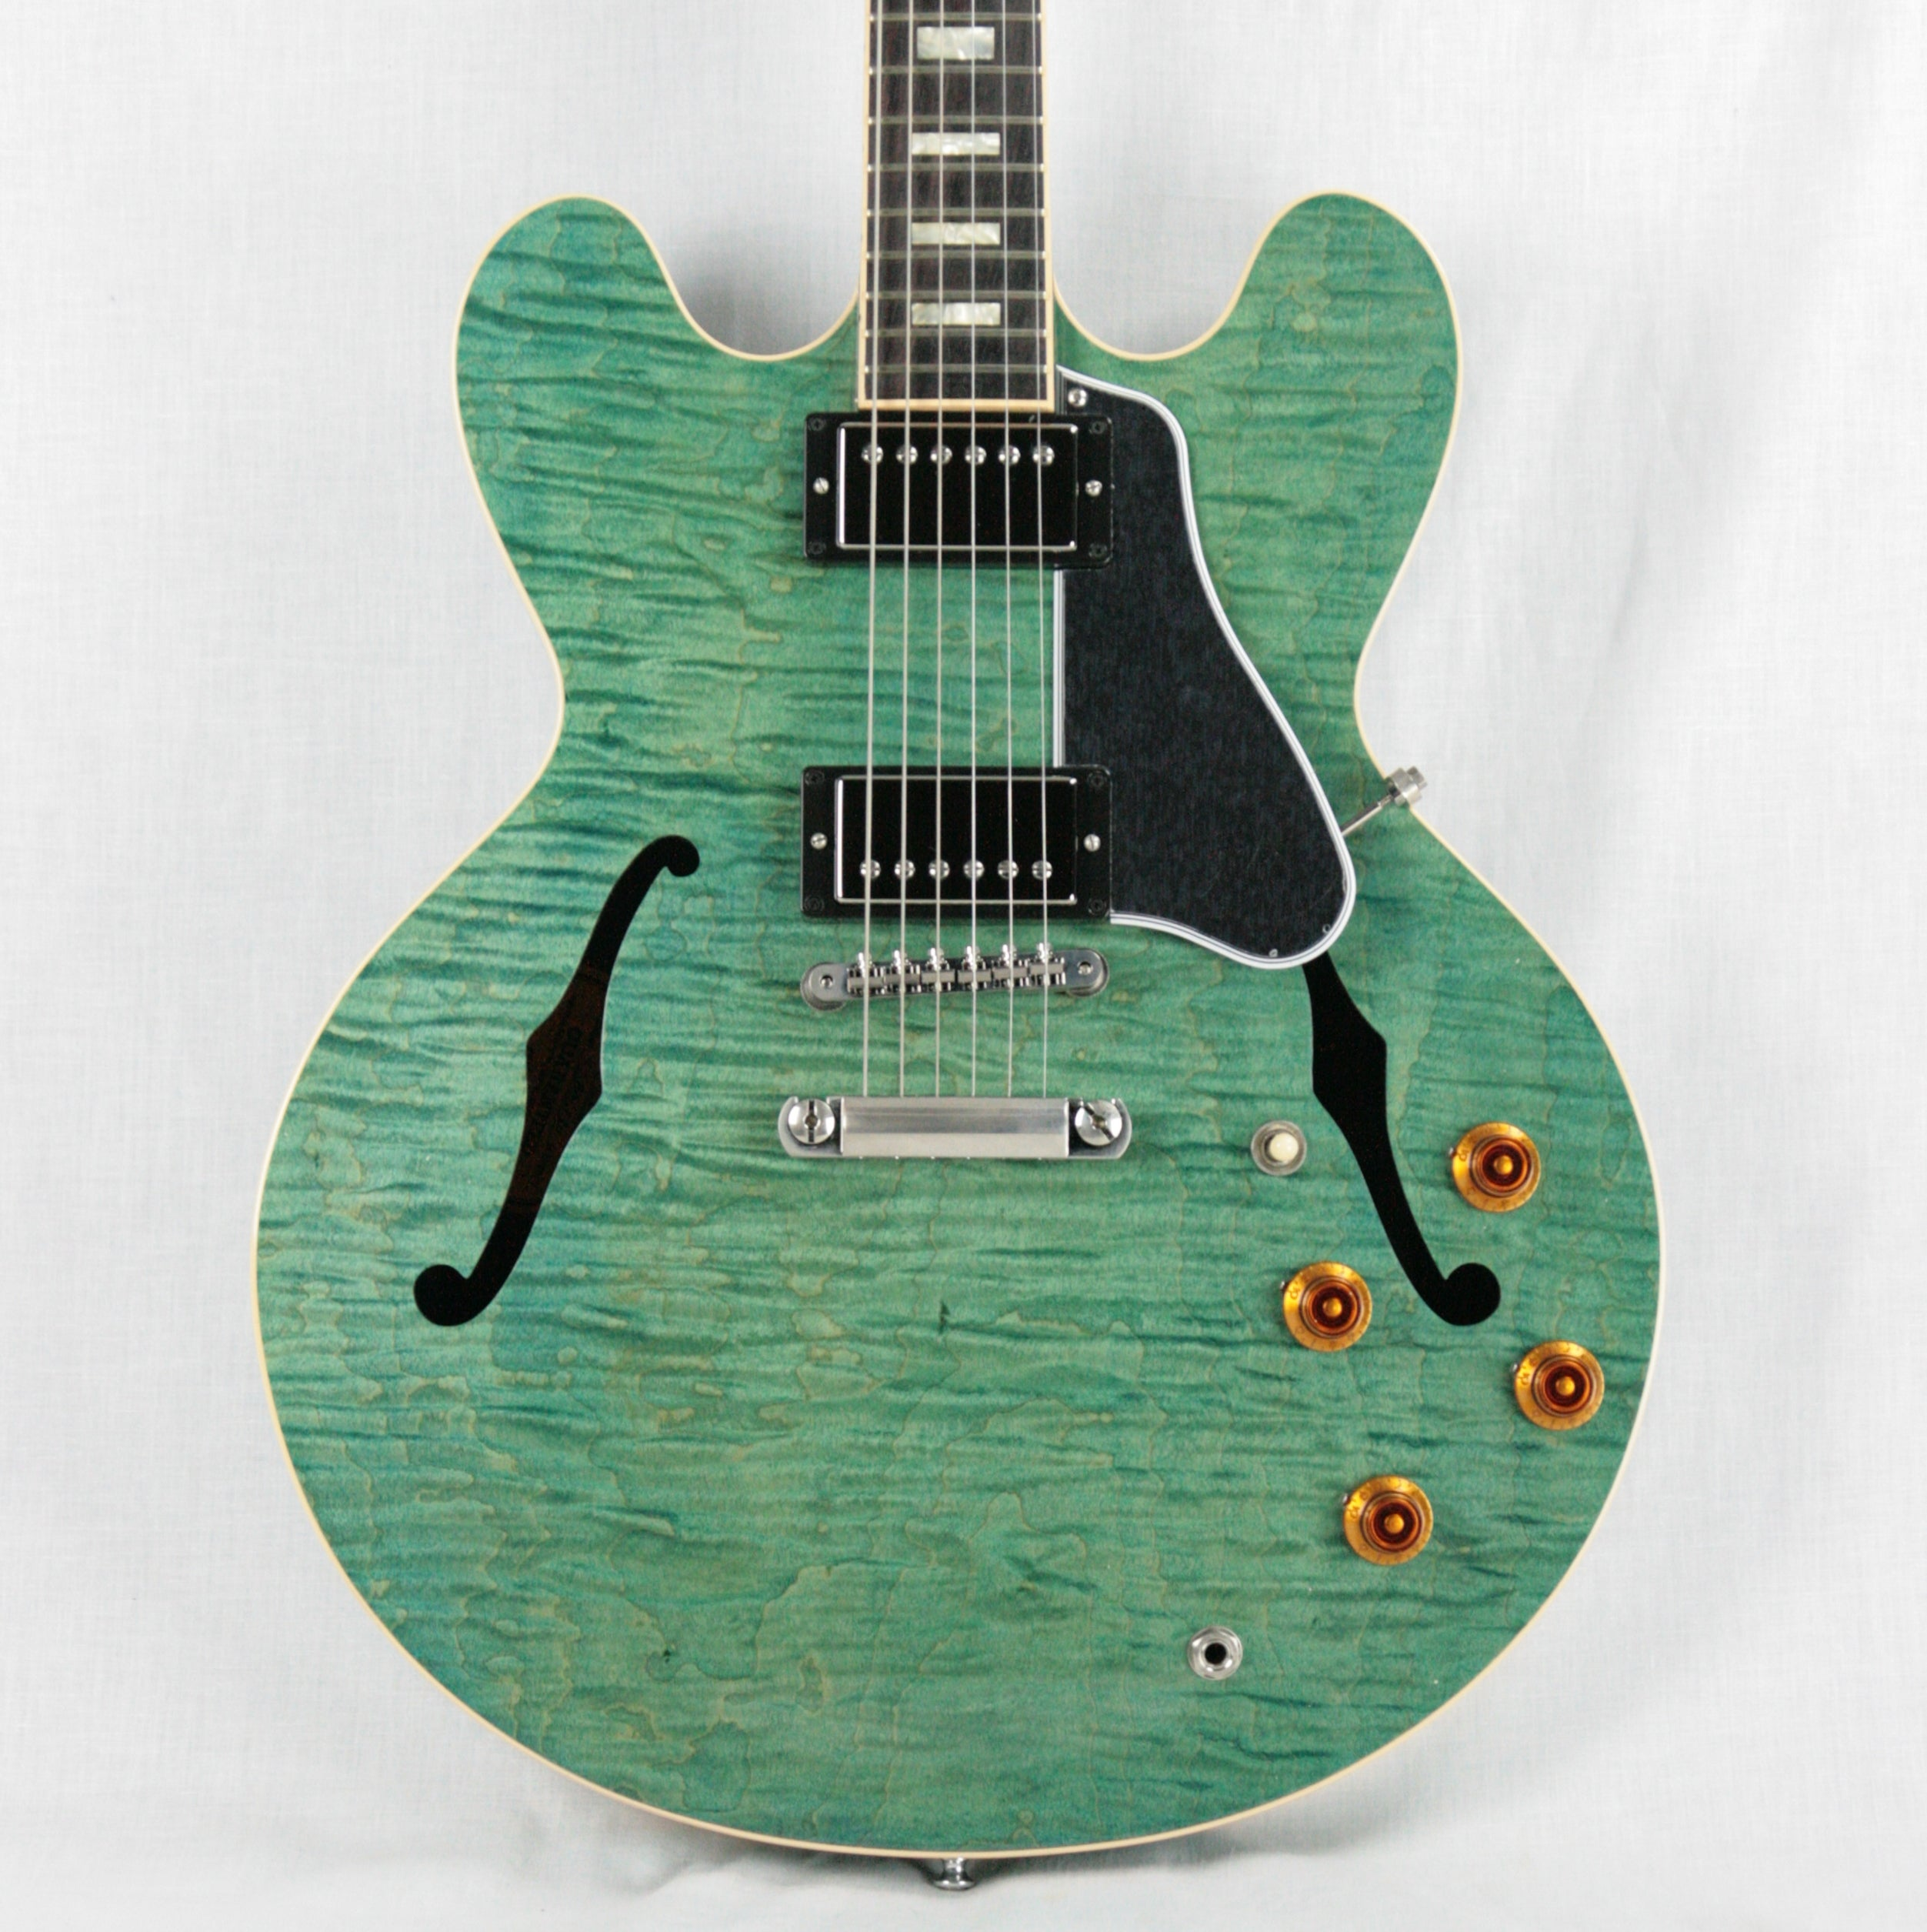 2016 Gibson ES-335 FIGURED Turquoise Limited Edition! Block inlays, Flametop! Memphis